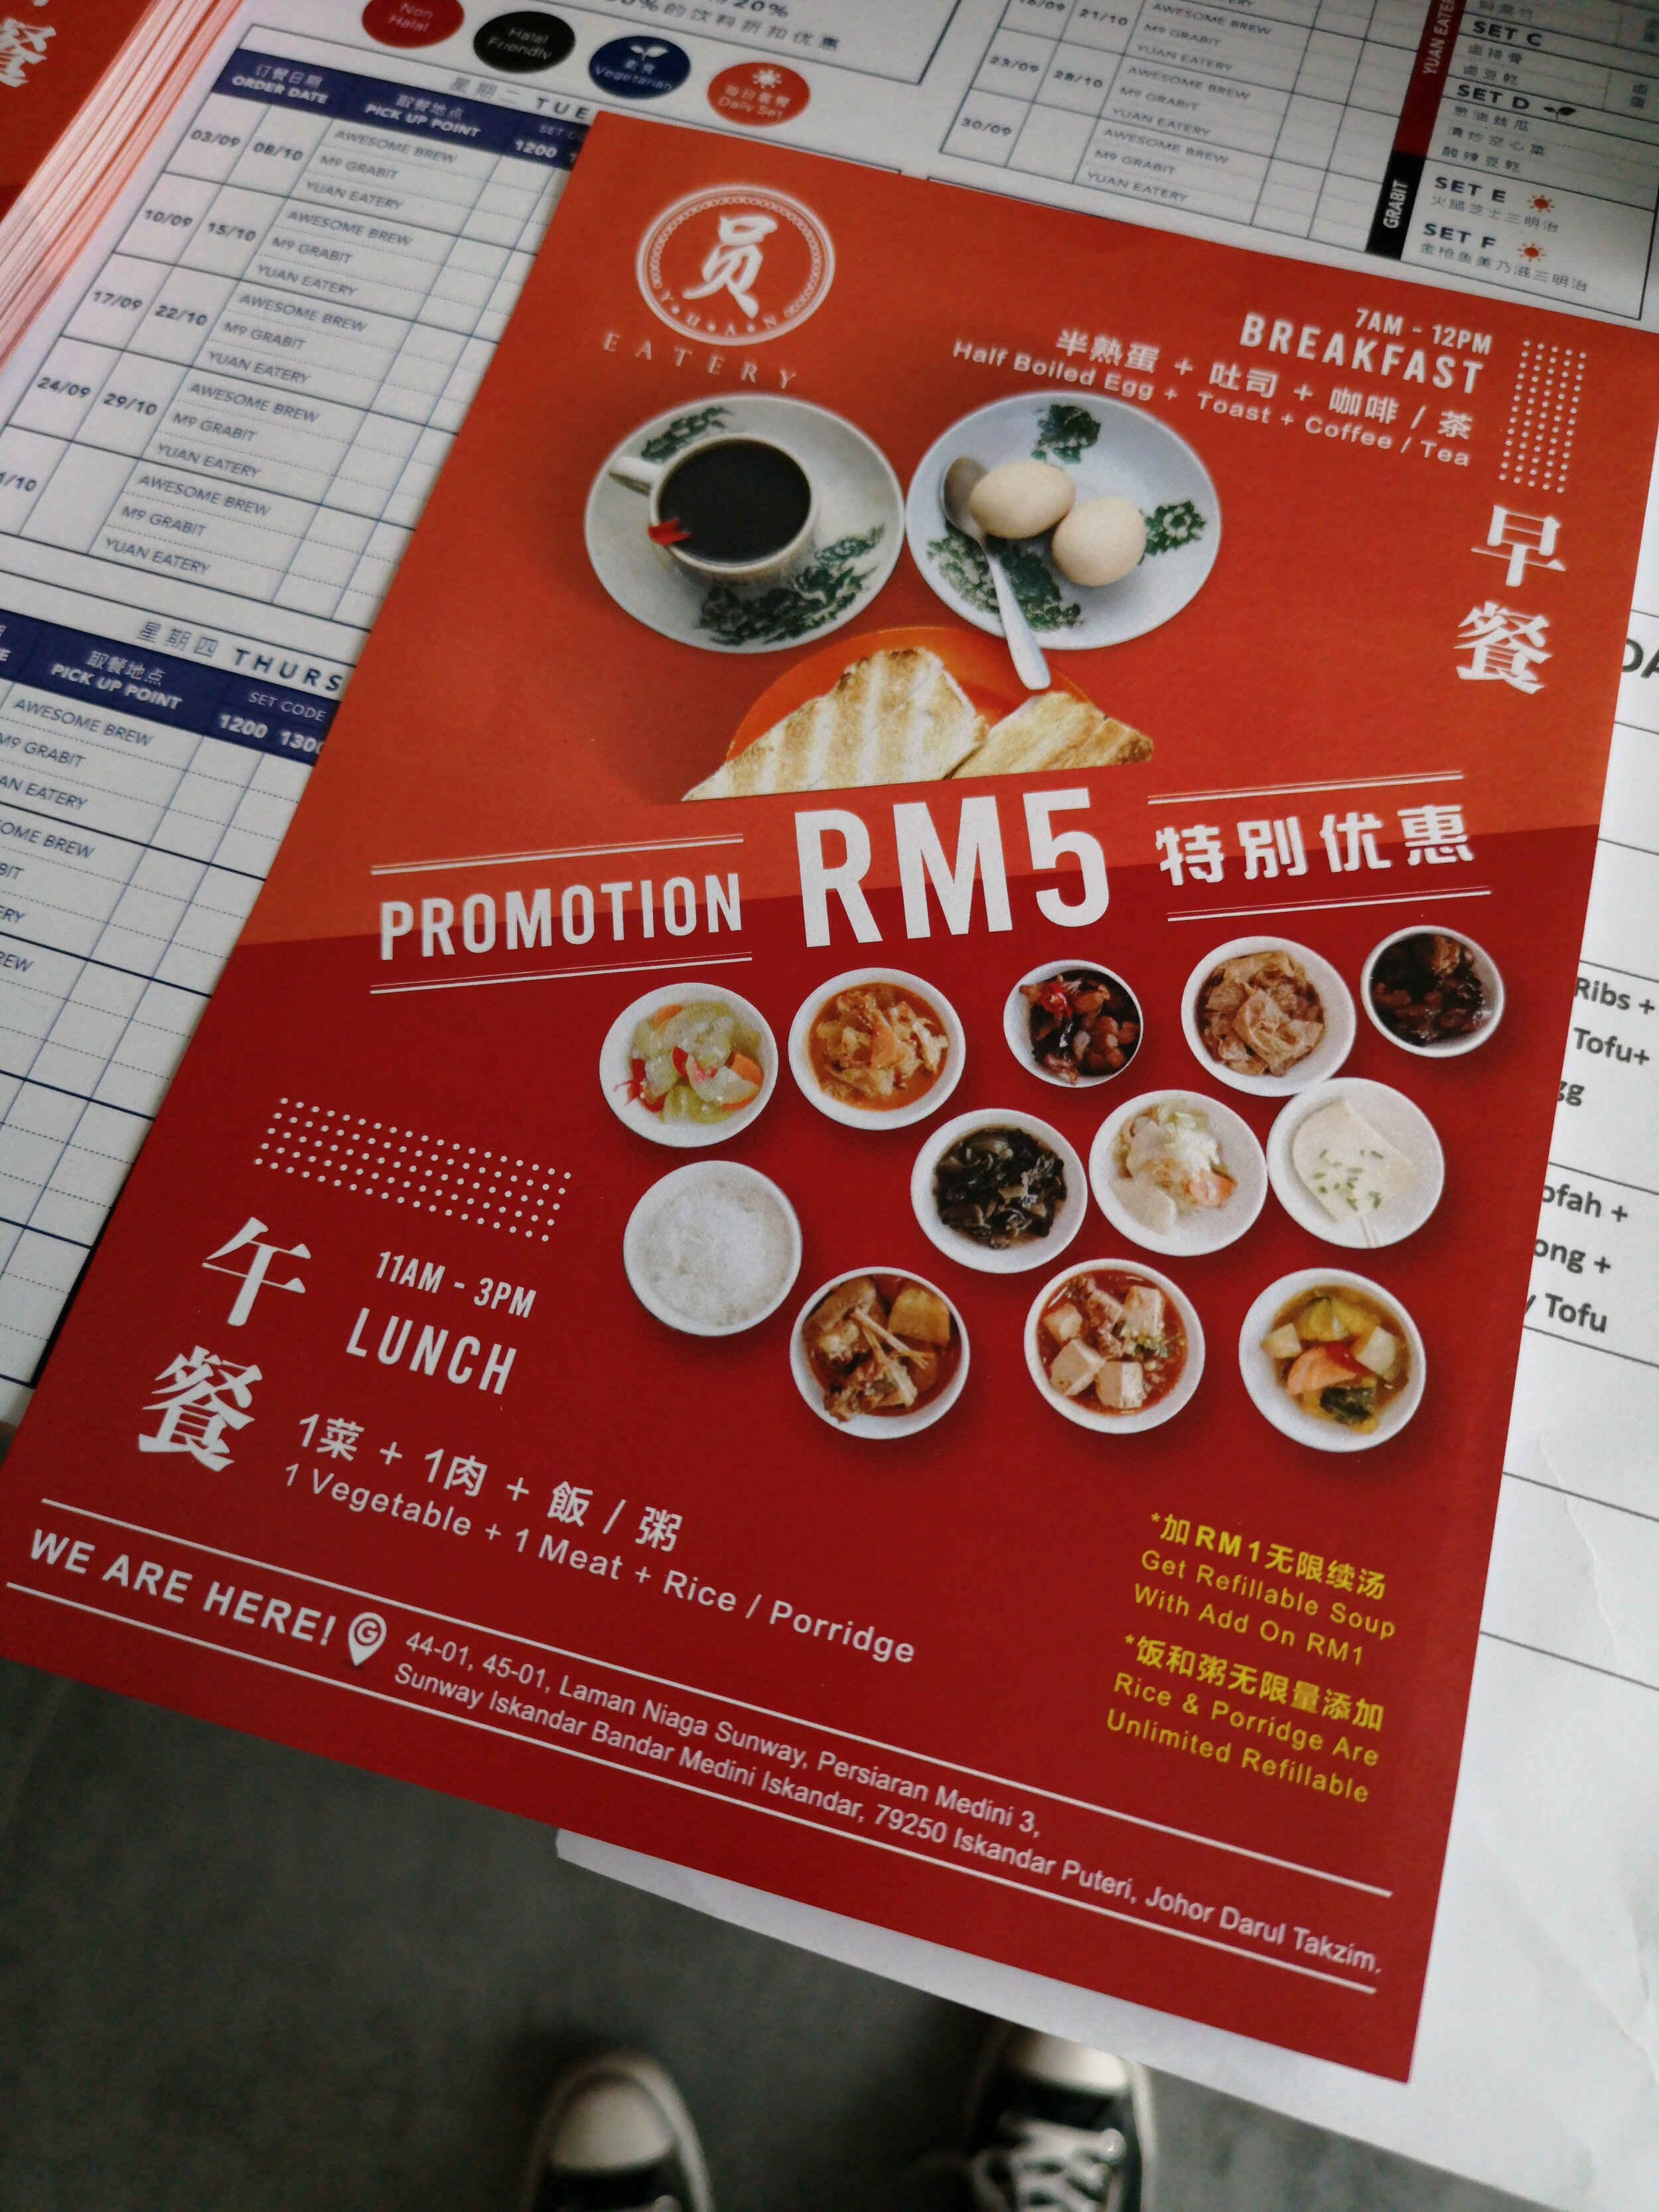 The Breakfast/Lunch RM5 Promotion!